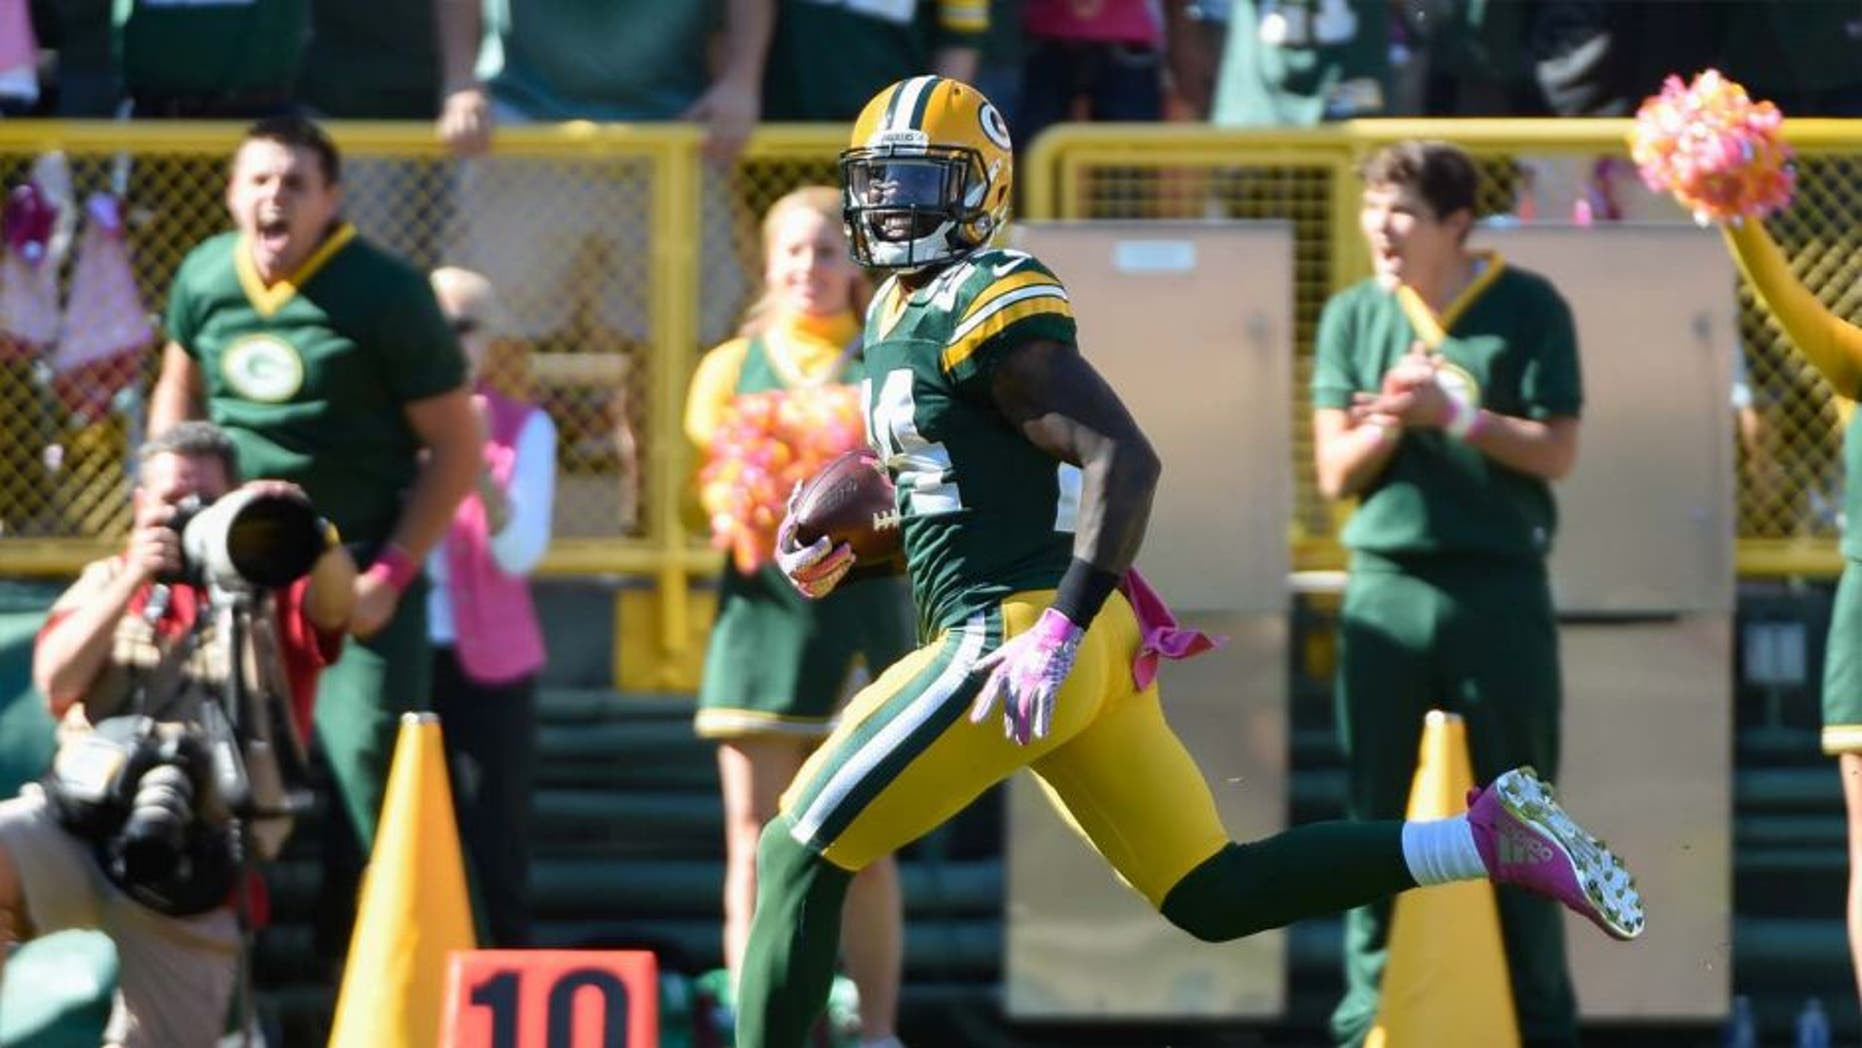 Sunday, Oct. 11: Green Bay Packers cornerback Quinten Rollins returns an interception for a touchdown in the first quarter against the St. Louis Rams at Lambeau Field in Green Bay, Wis.